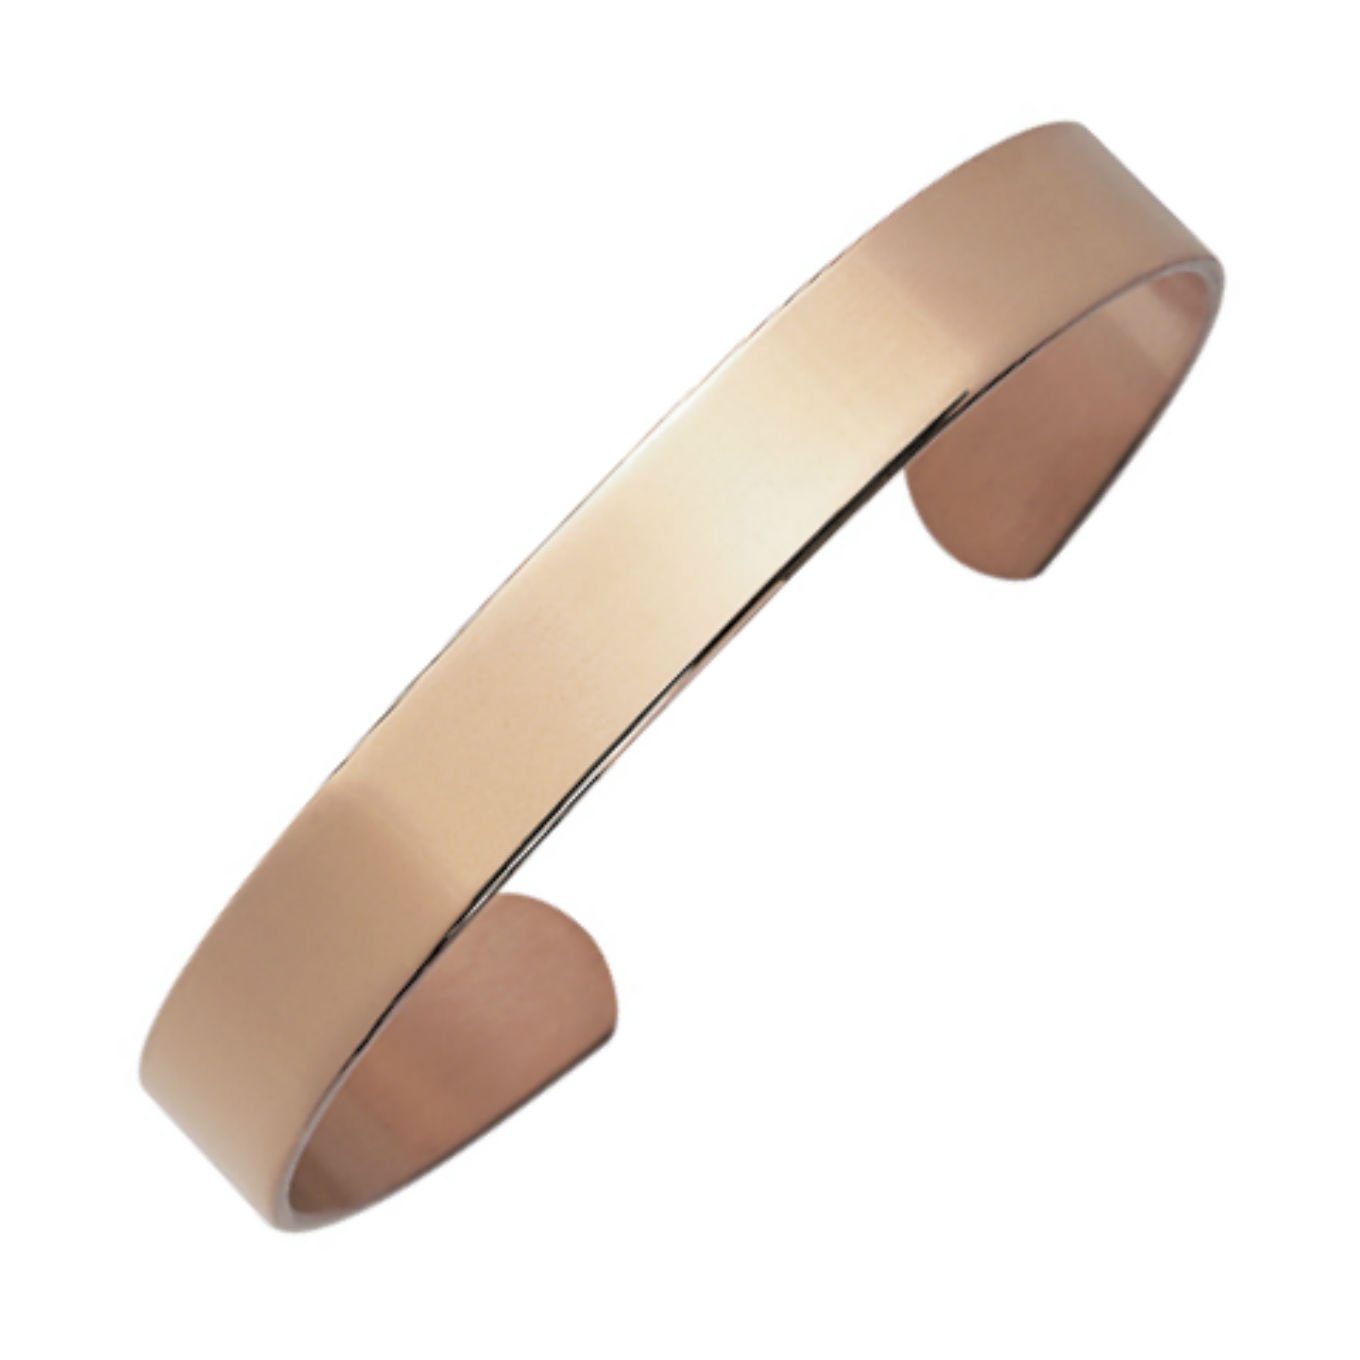 Sufferers wear copper jewelry in the hopes of easing symptoms - Arthriton Plain Solid Pure Copper Bracelet Health Band For Rheumatism Arthritis 9mm Wide Ml Fits Wrist Up To 22cm Amazon Co Uk Health Personal Care